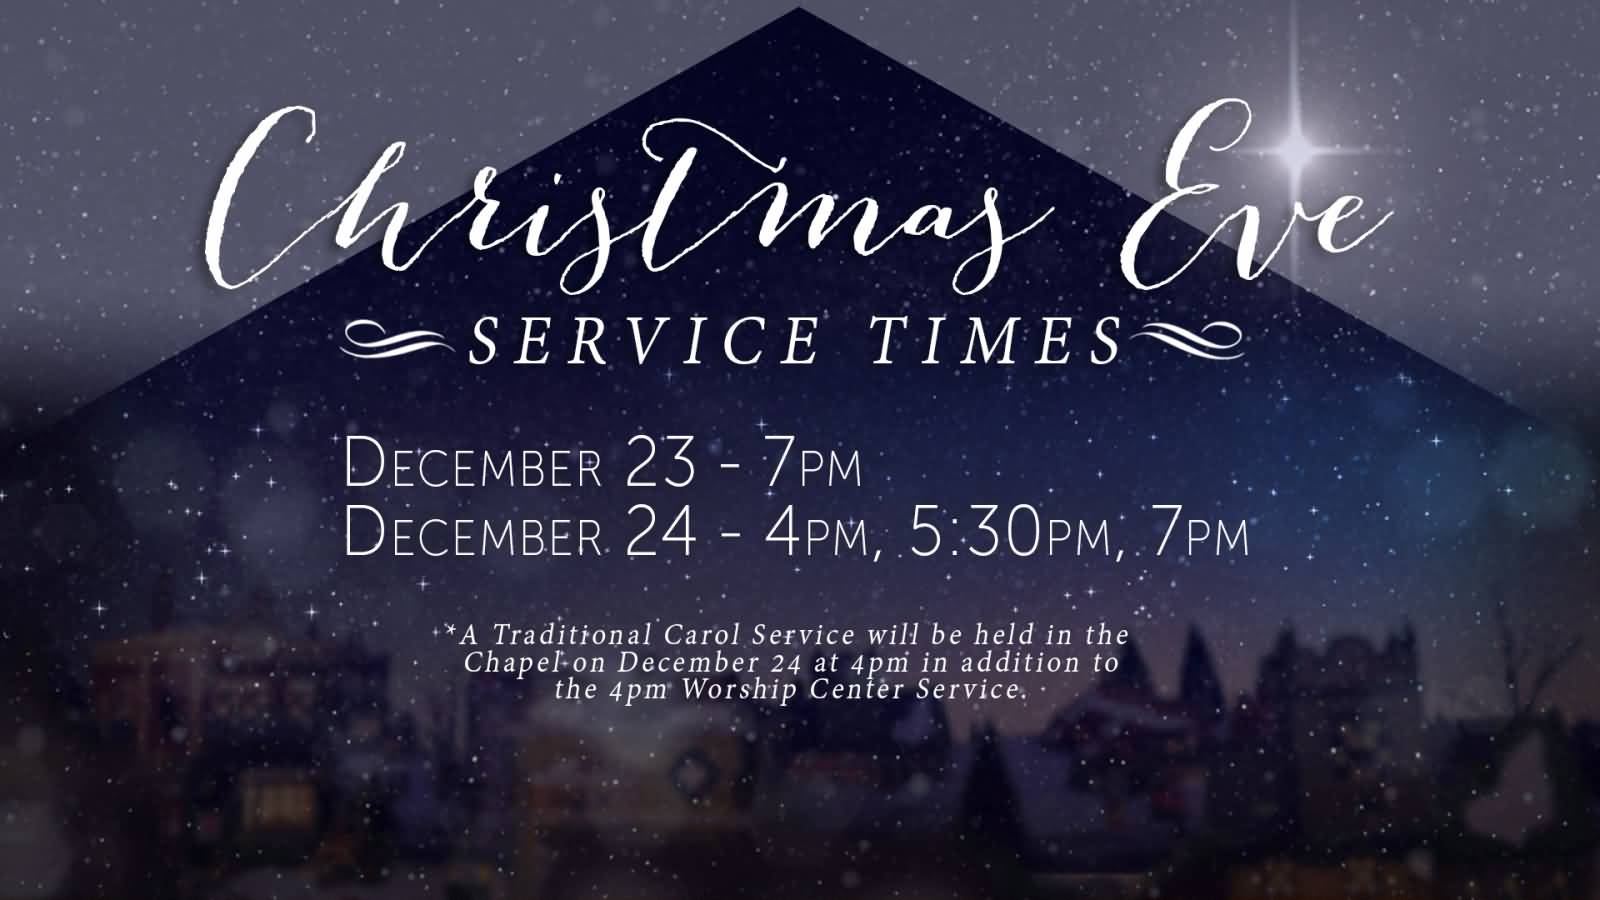 Christmas eve worship service ideas - Christmas Eve Service Times